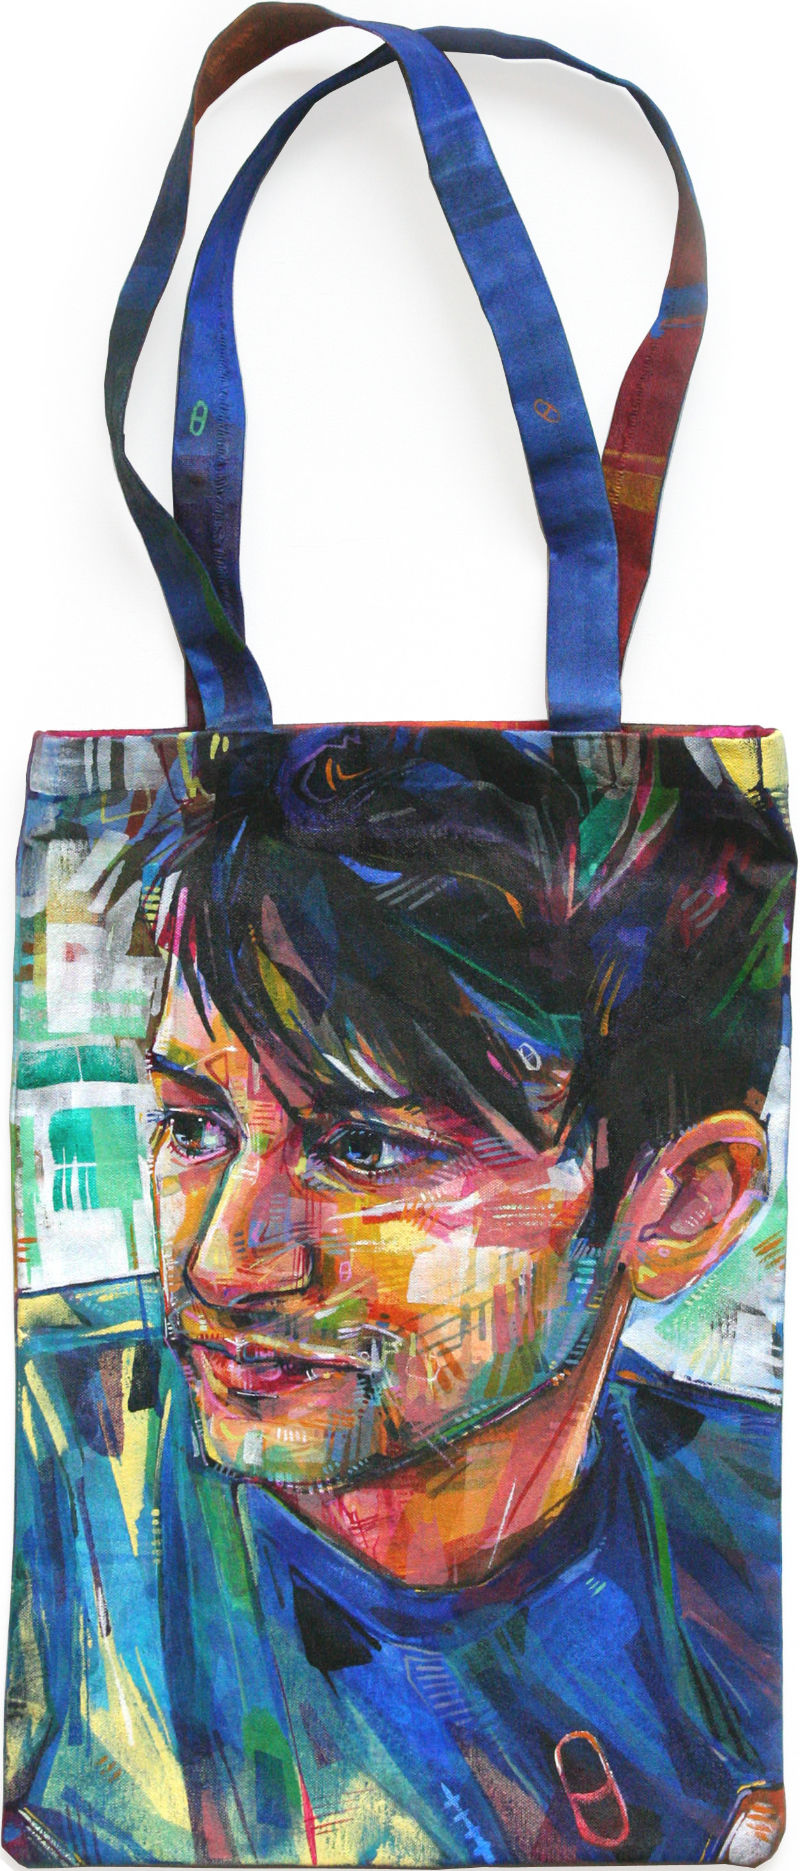 painted portrait bag of Jesse Morgan Young